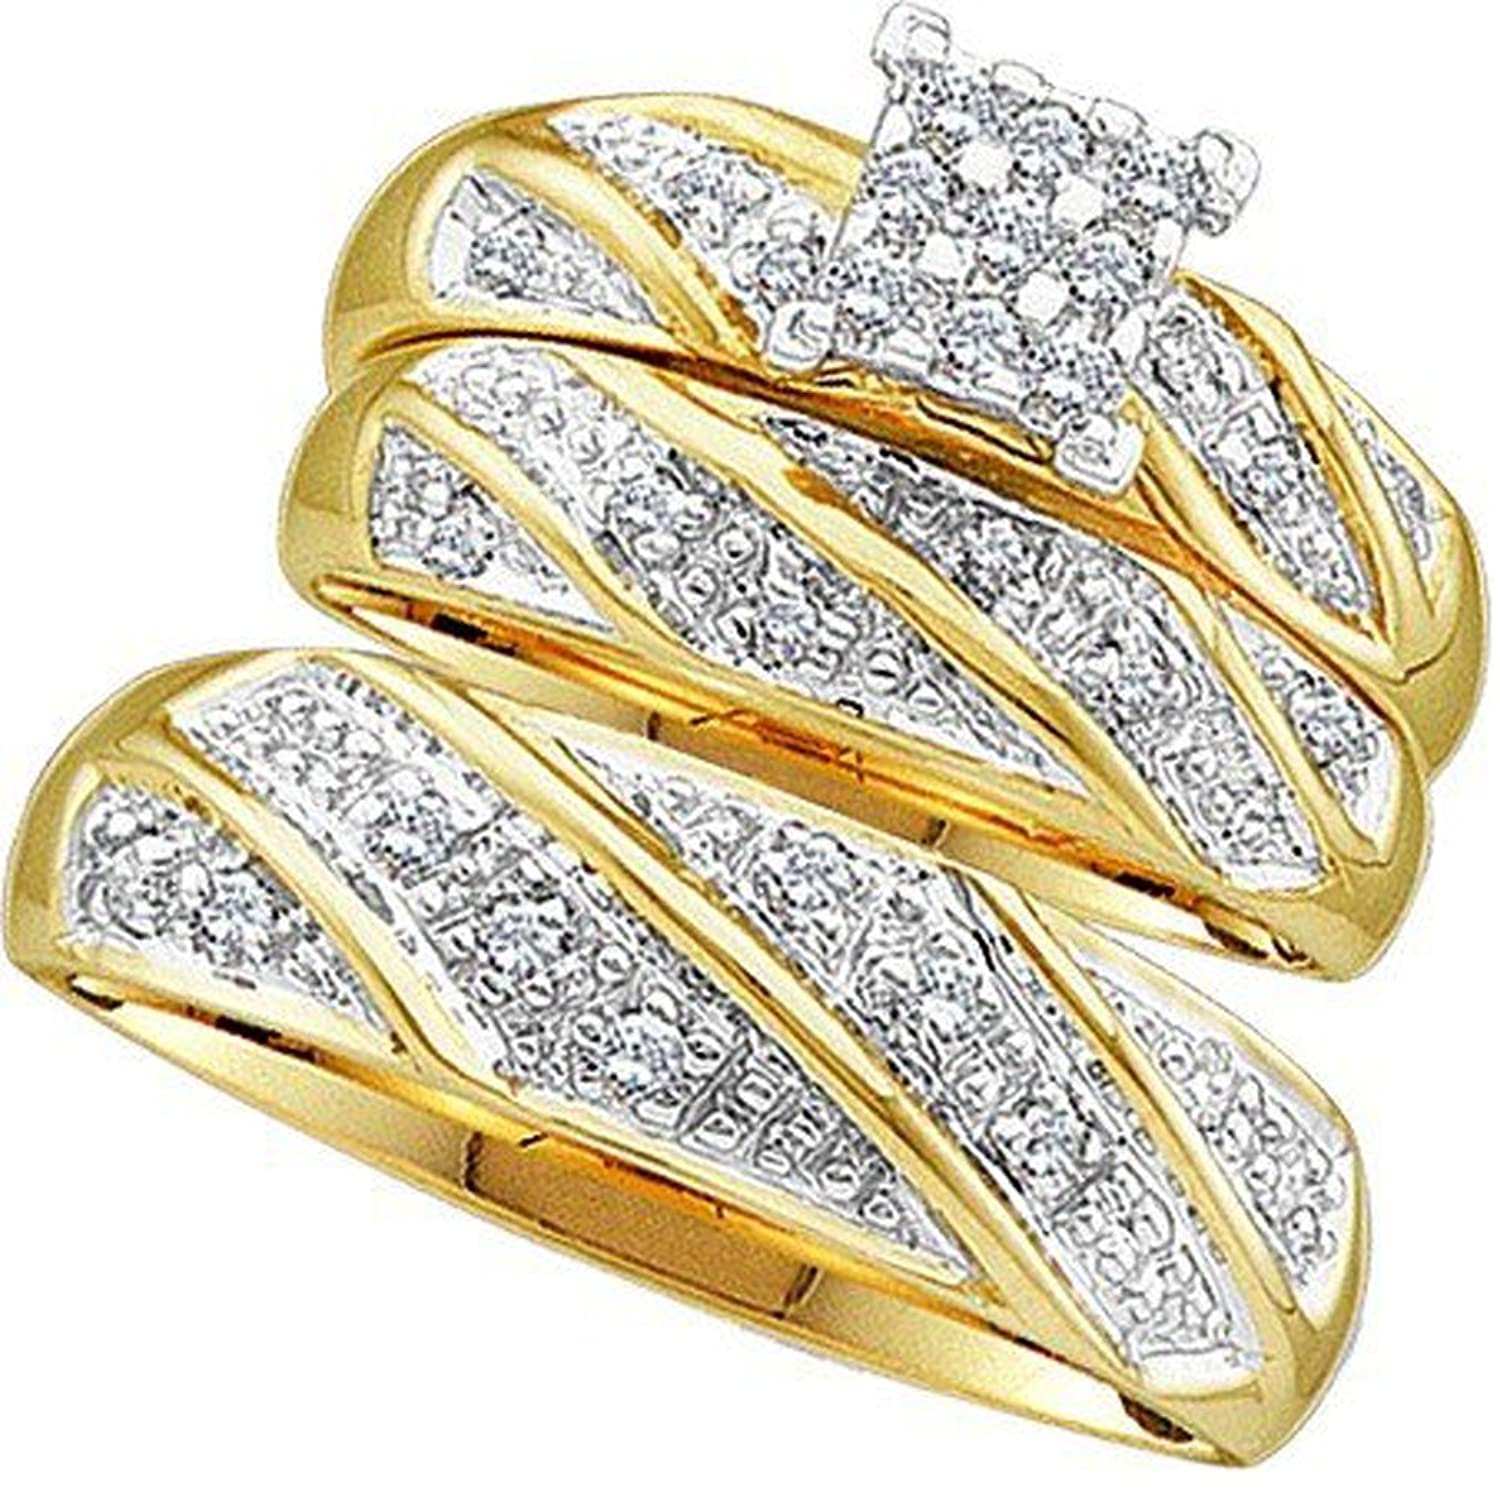 band white lovely rings matvuk plain com yellow comfort ring wedding of bands gold for her or inspirational fit classic domed